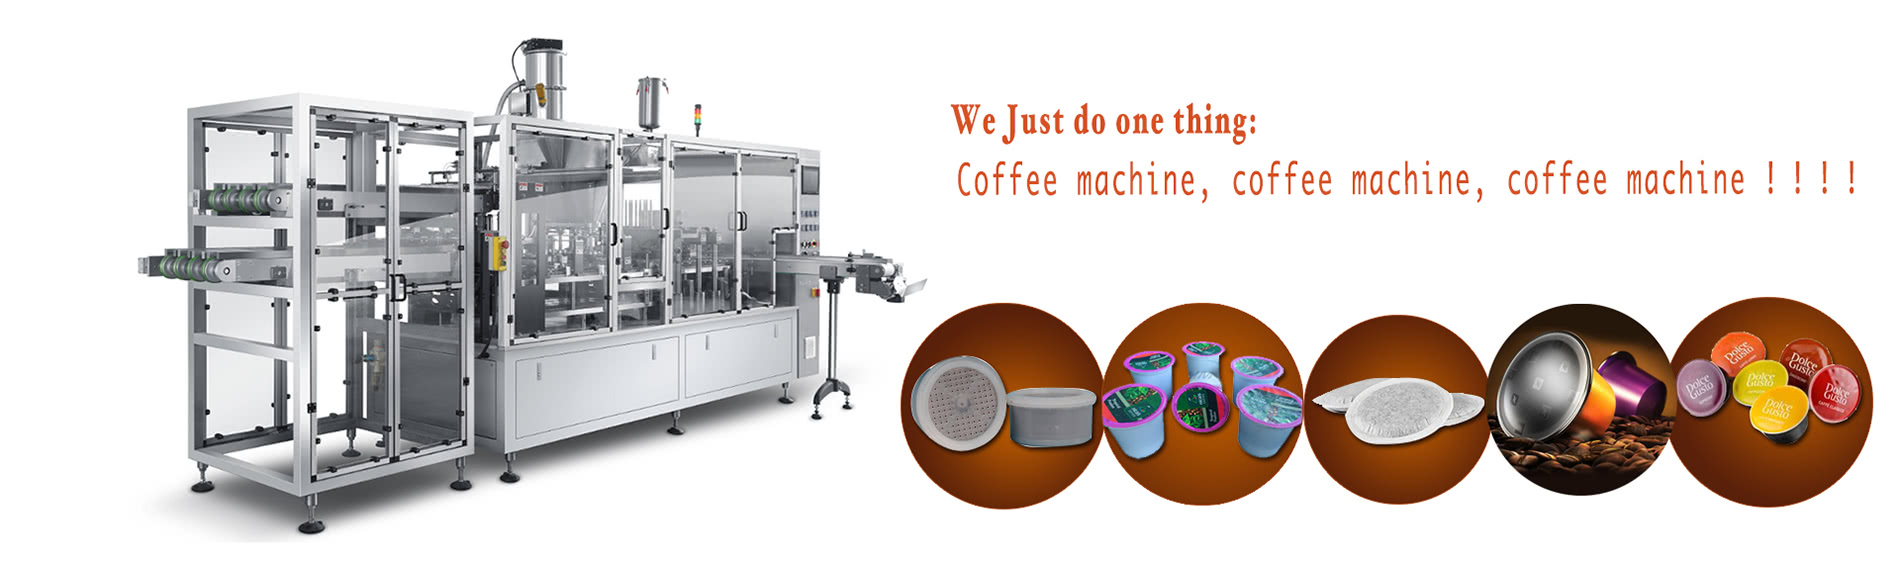 SLIDE1-www.coffeemachinesuppler.com